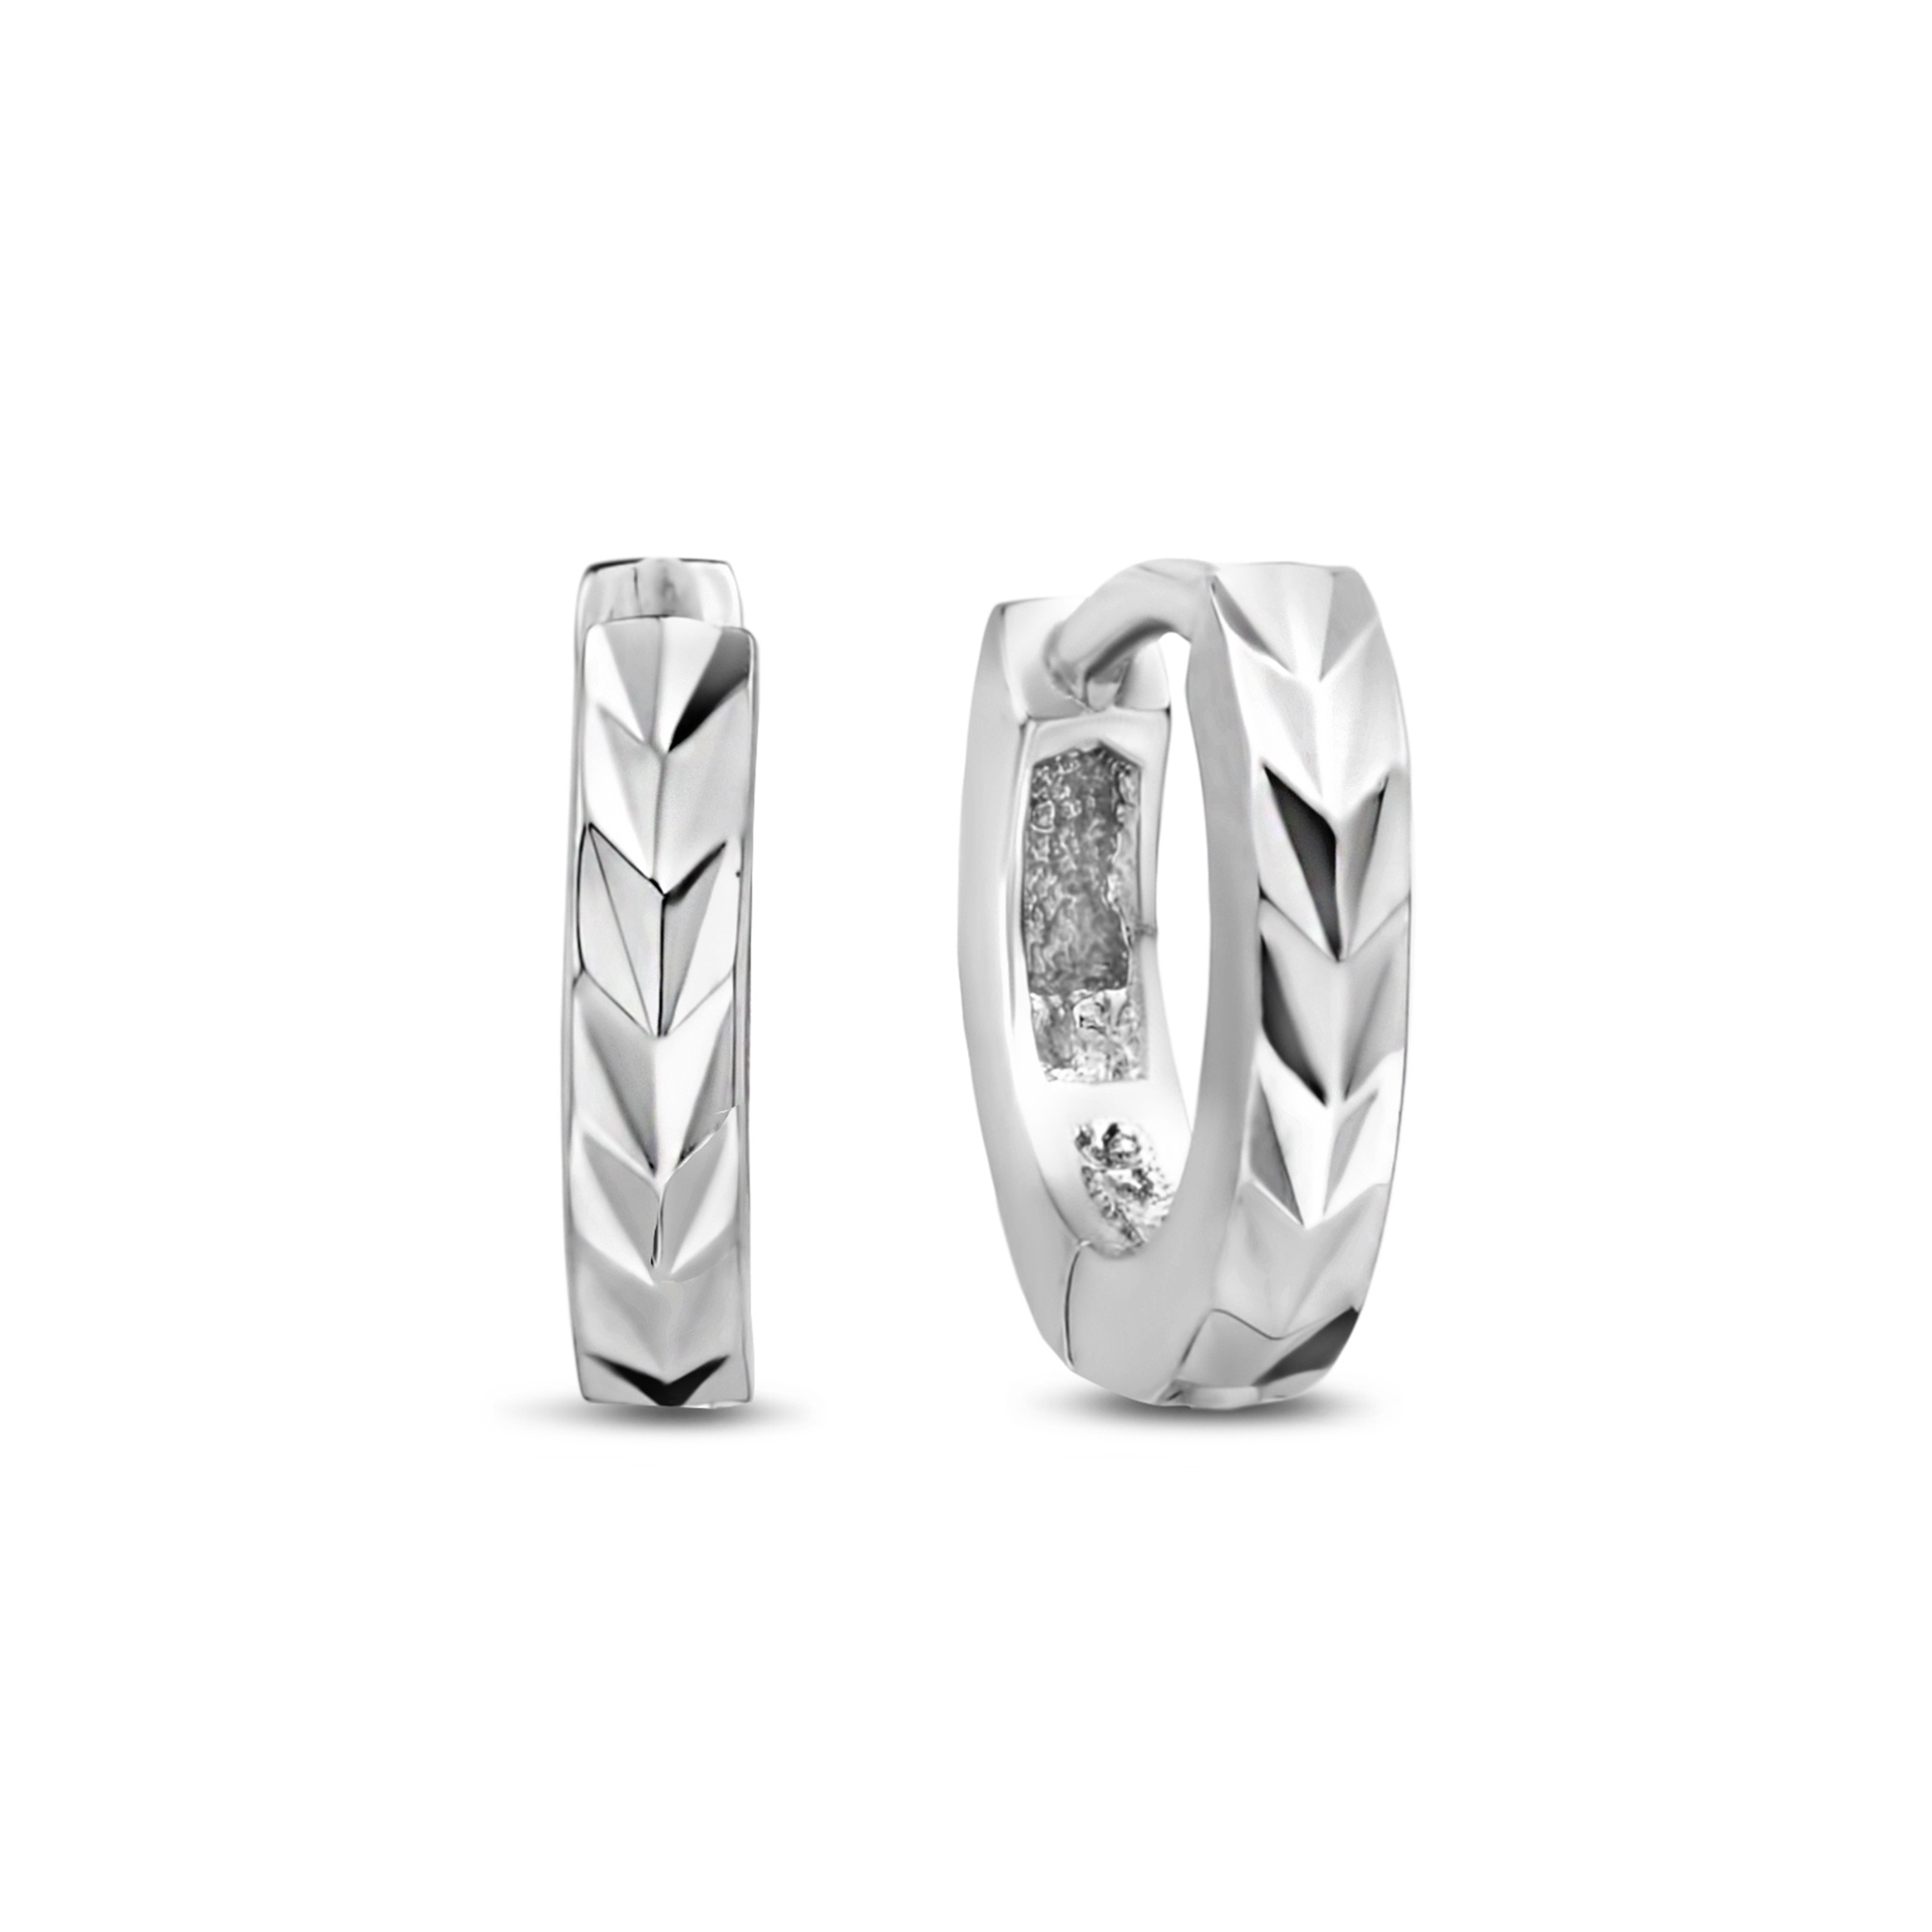 Selected Jewels Léna Claire creoler i 925 sterling silver